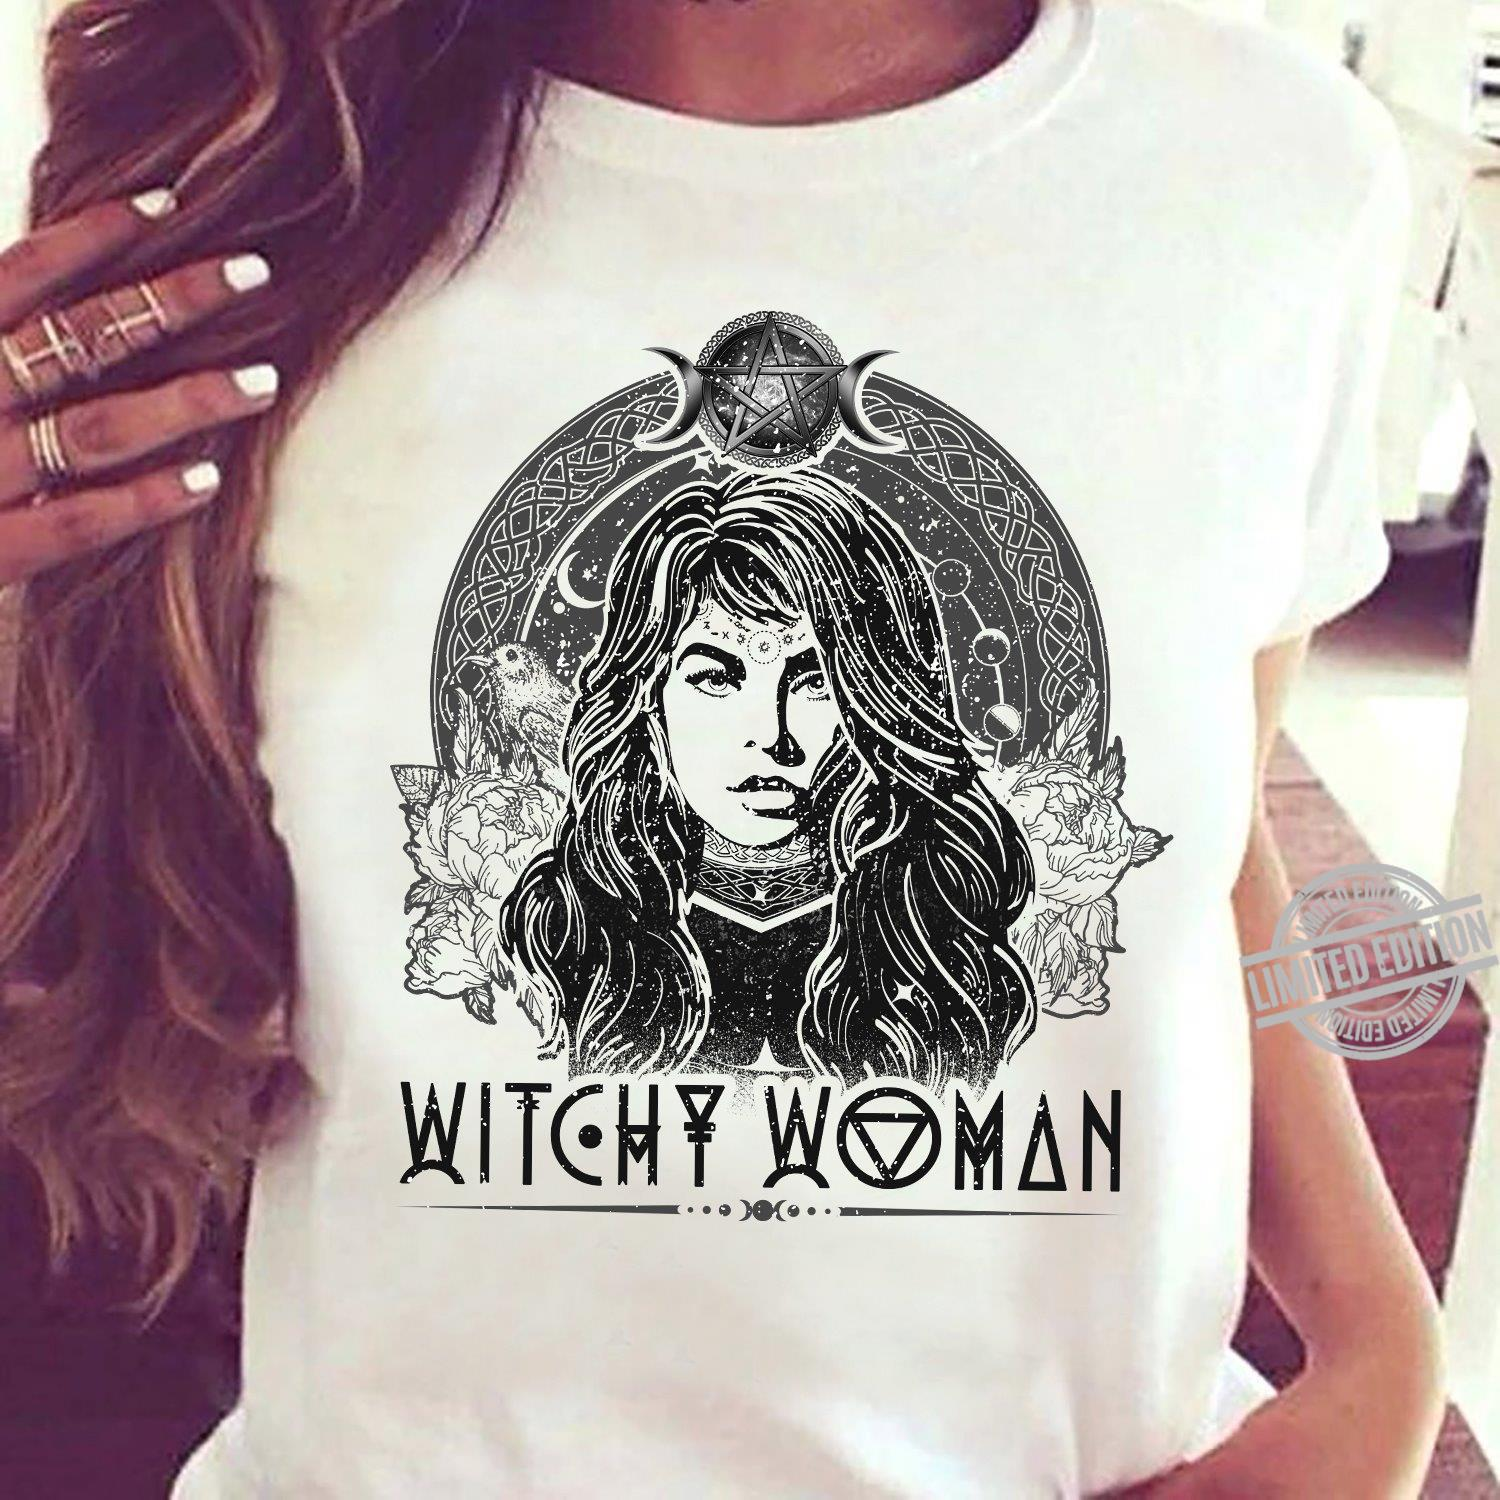 Witchy Woman Shirt